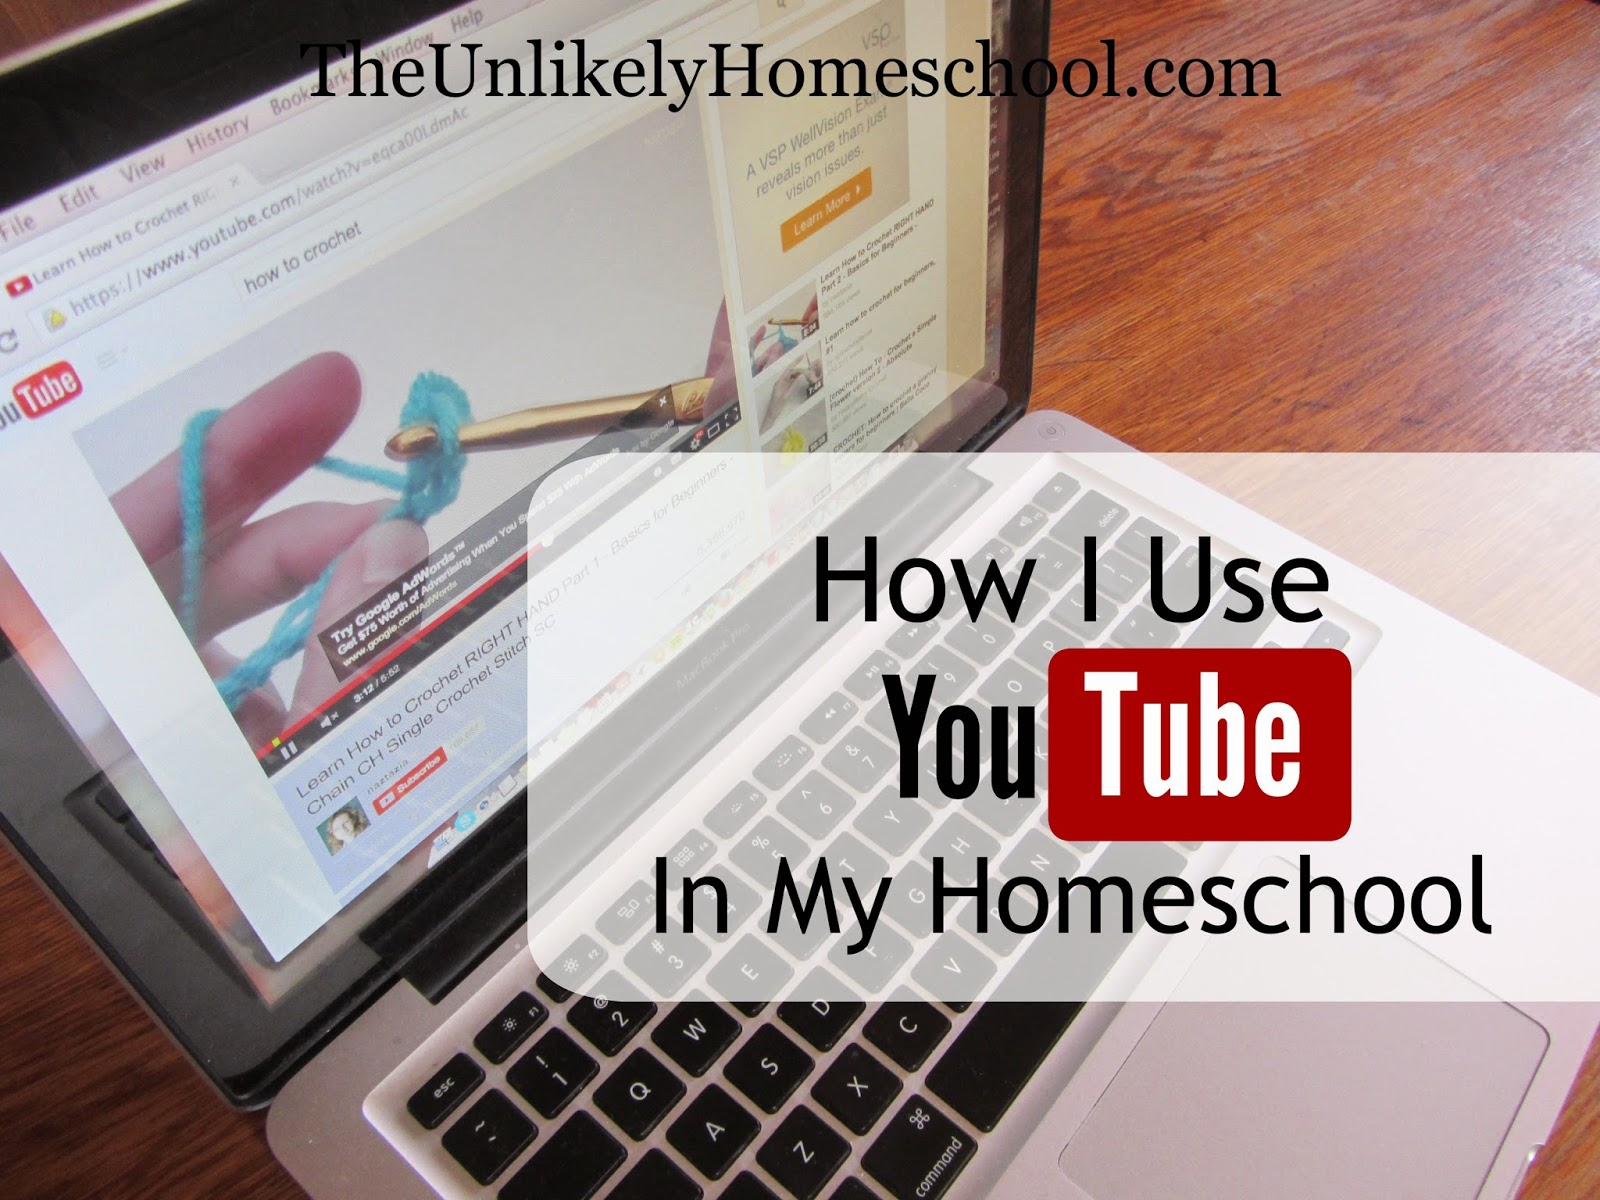 How I Use YouTube in My Homeschool {The Unlikely Homeschool}